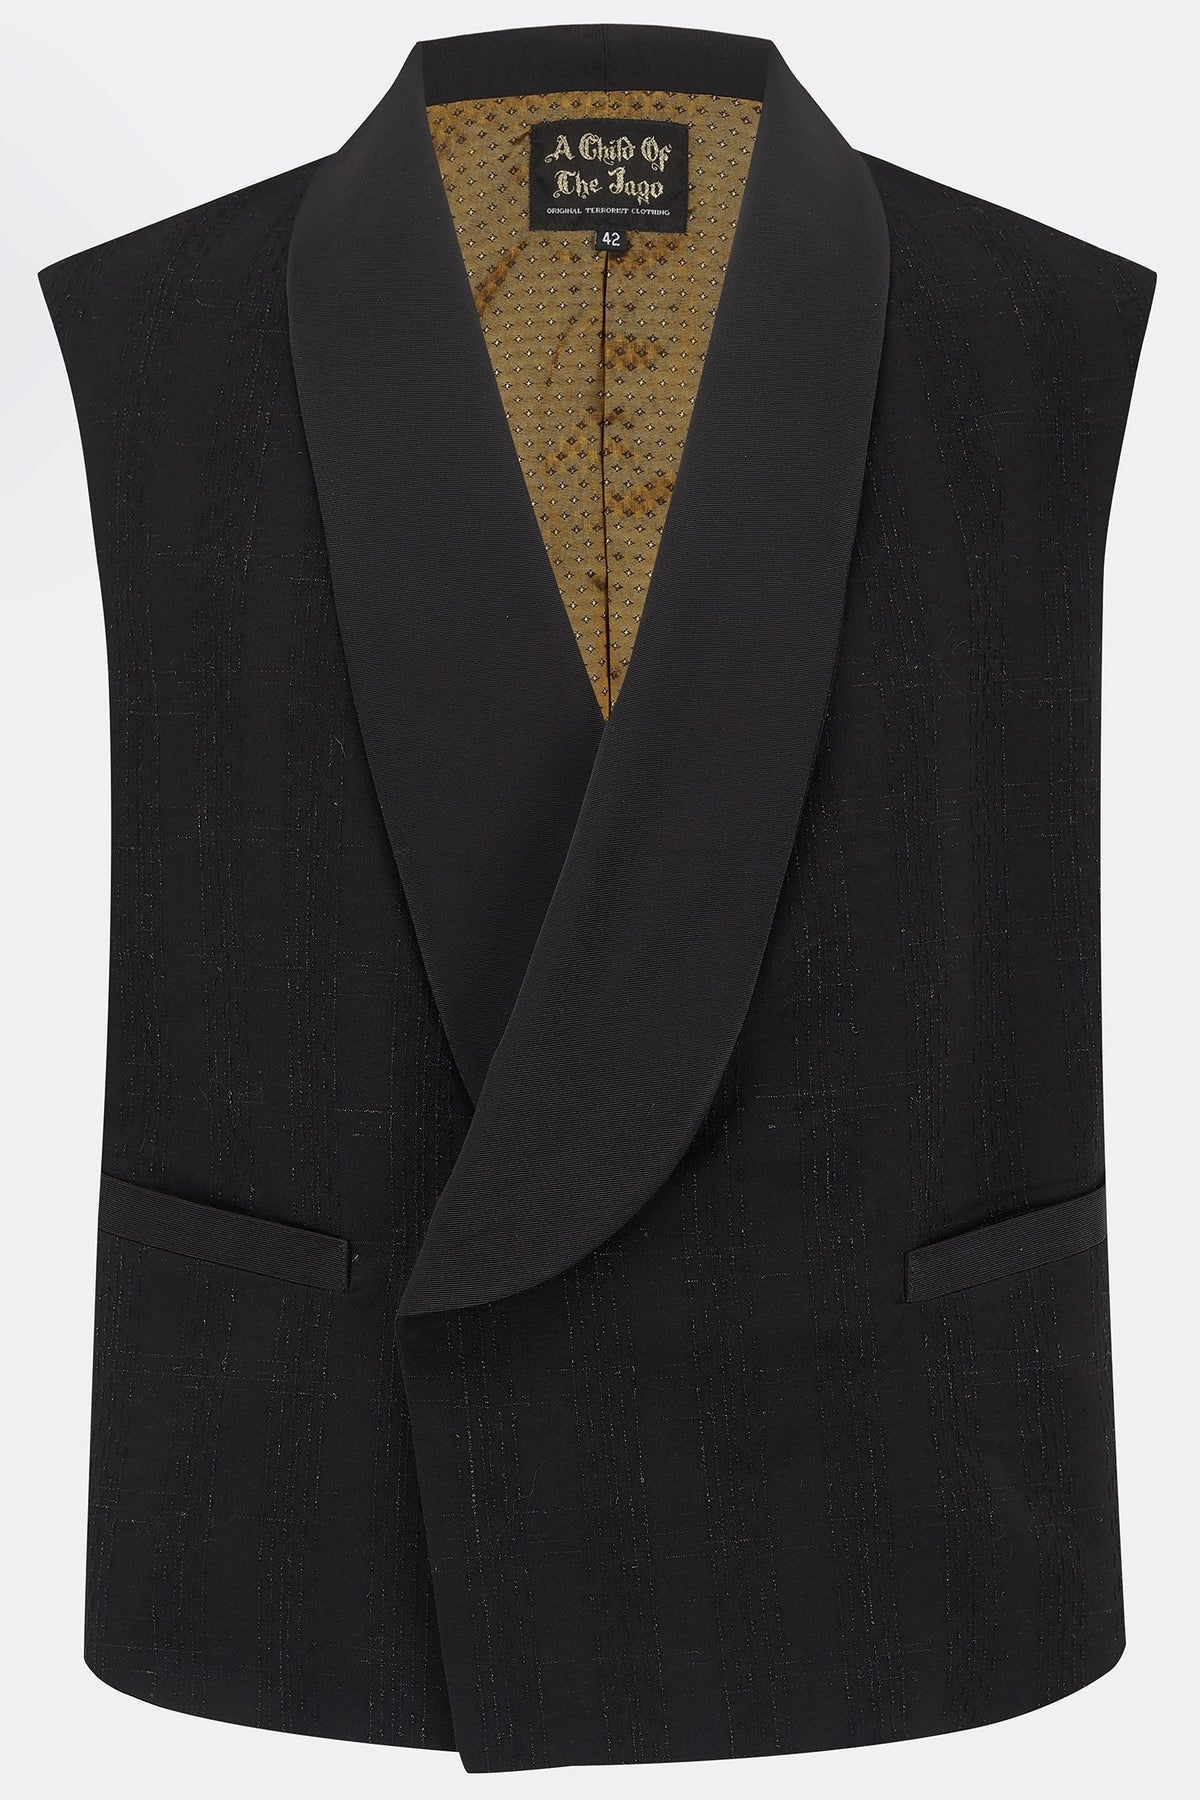 DILLINGER WAISTCOAT IN BLACK WOOL-menswear-A Child Of The Jago